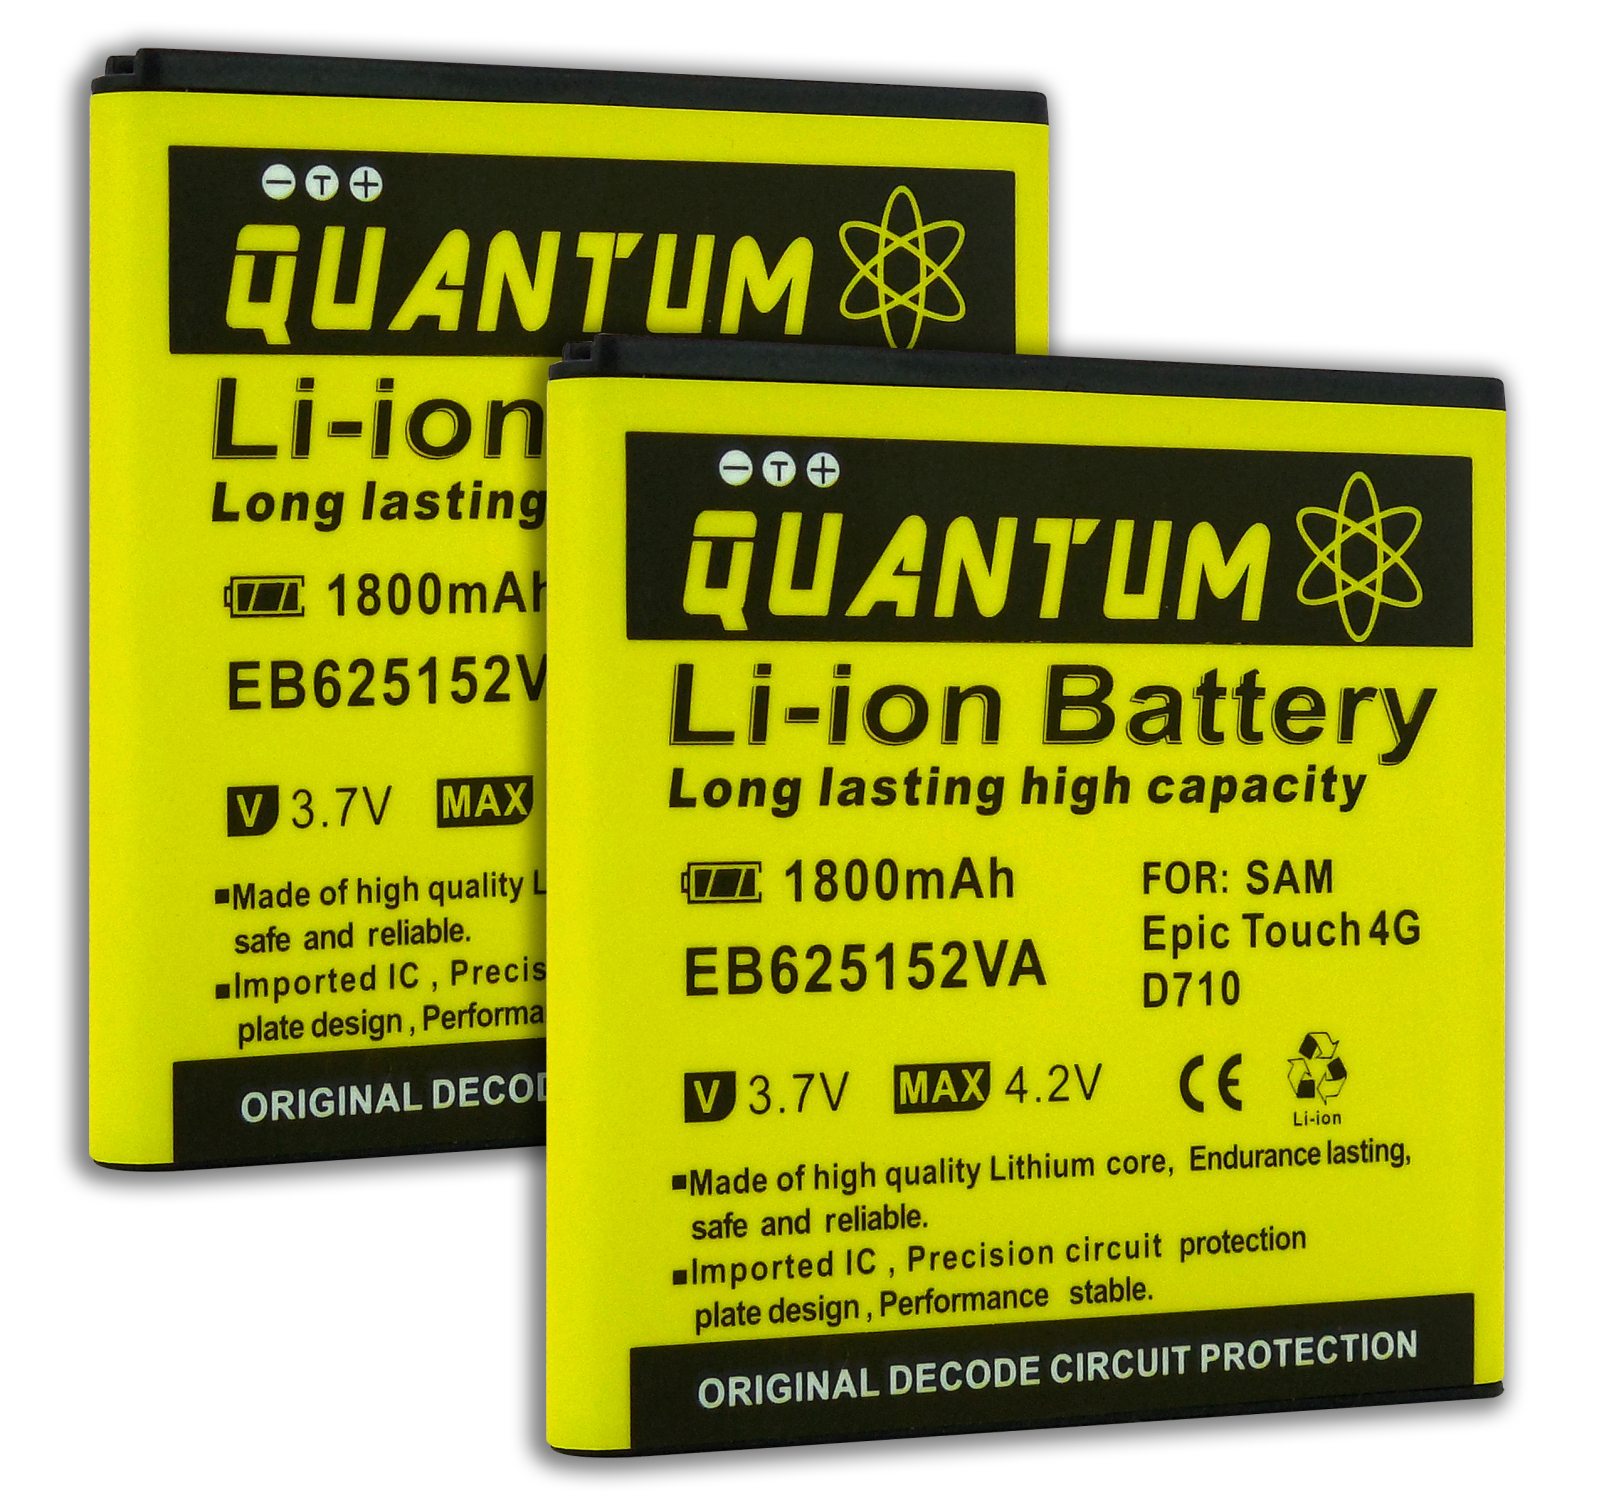 QUANTUM 2x 1,800 mAh Batteries for Galaxy S2 Epic 4G Touch SPH-D710 (Sprint, Boost Mobile )12 MONTH WARRANTY